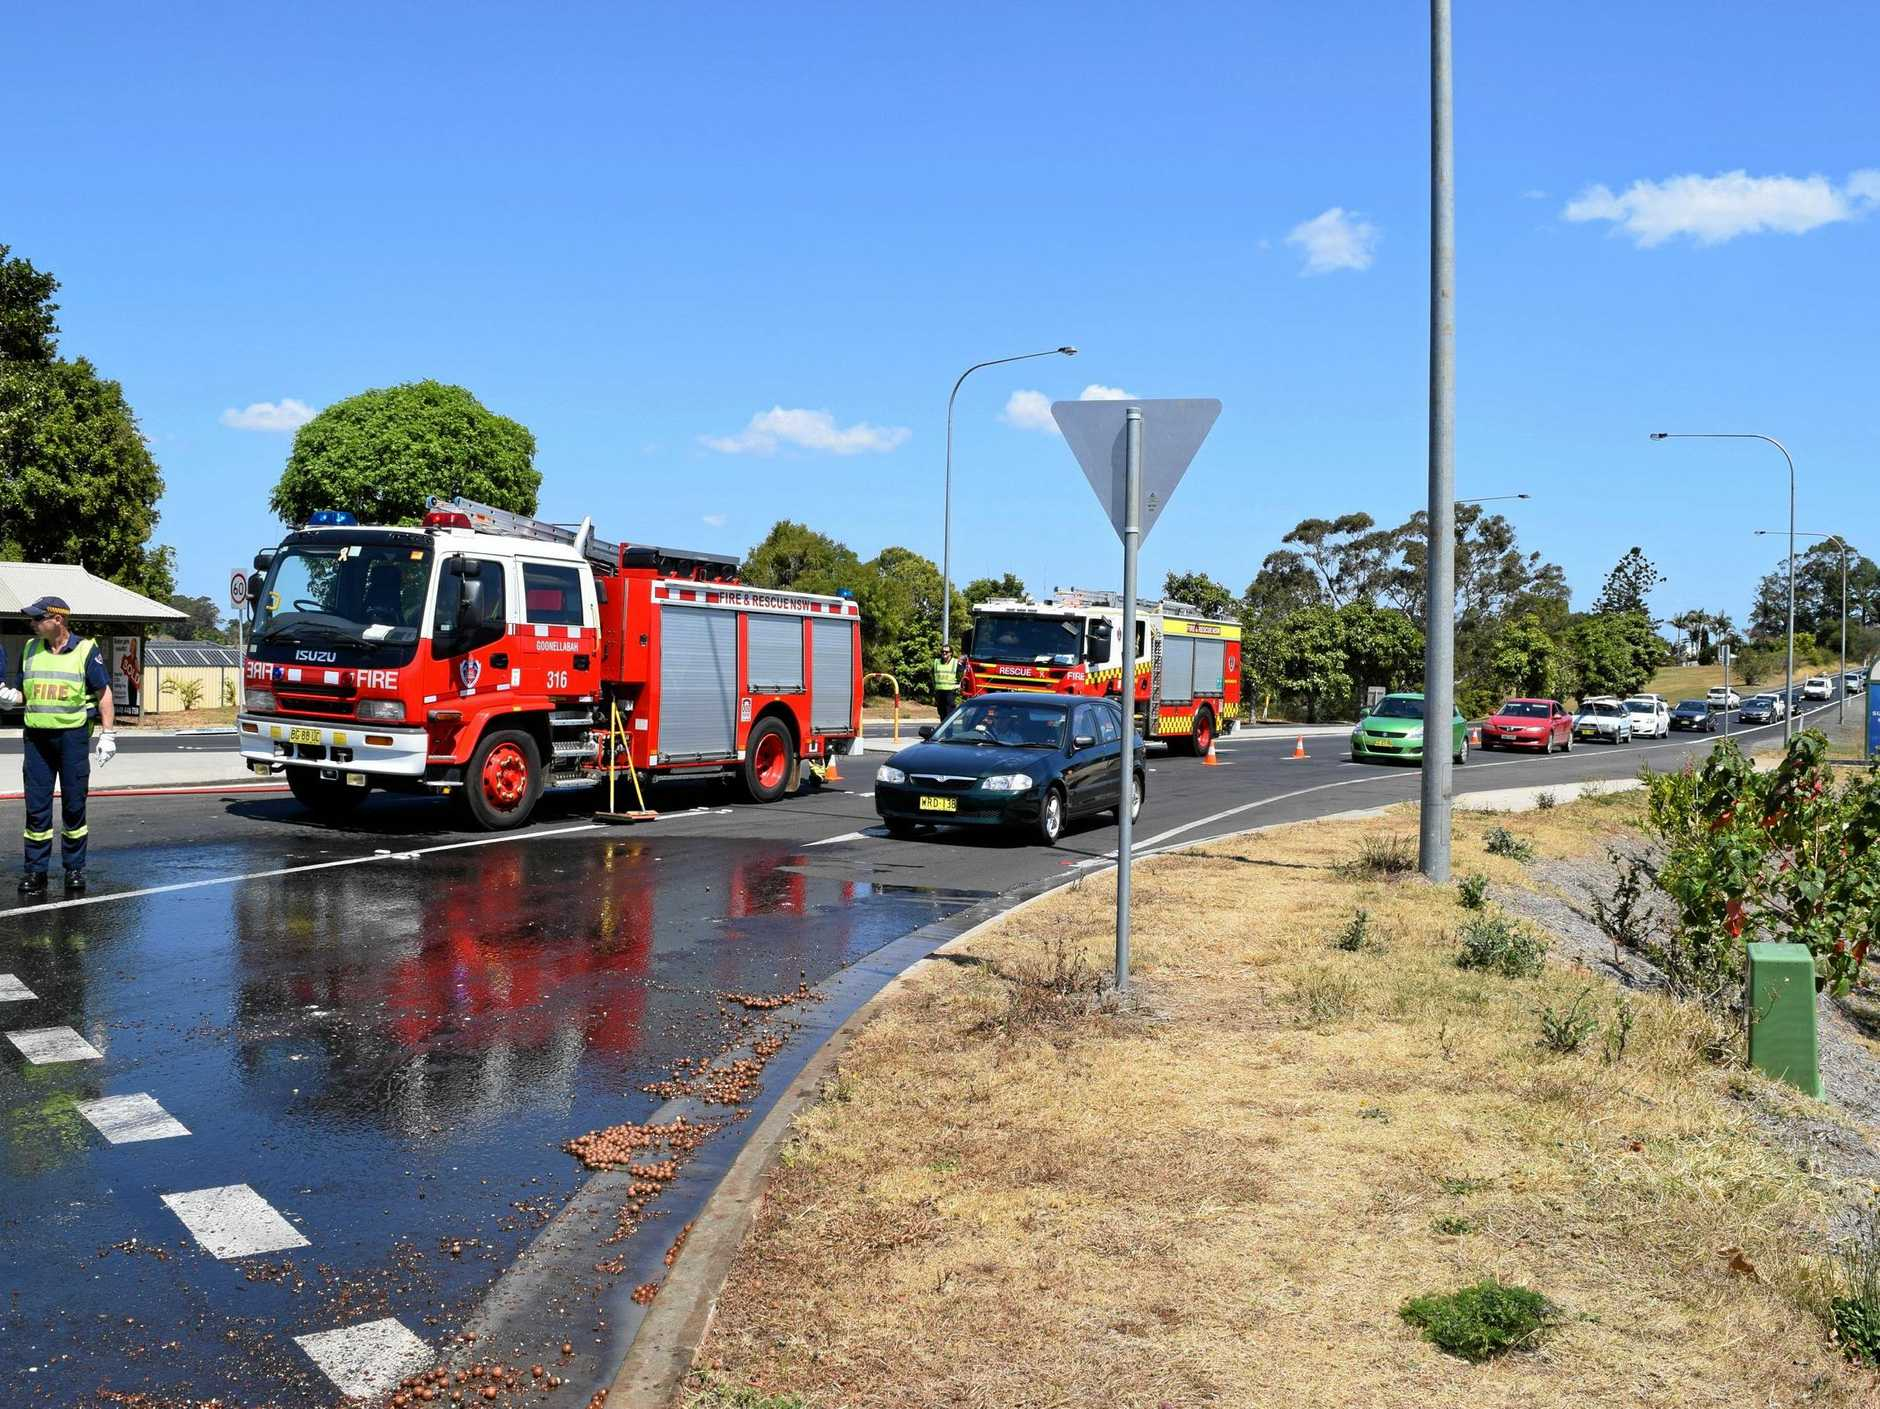 Macadamia nuts on the road halted traffic while emergency services hosed them off.